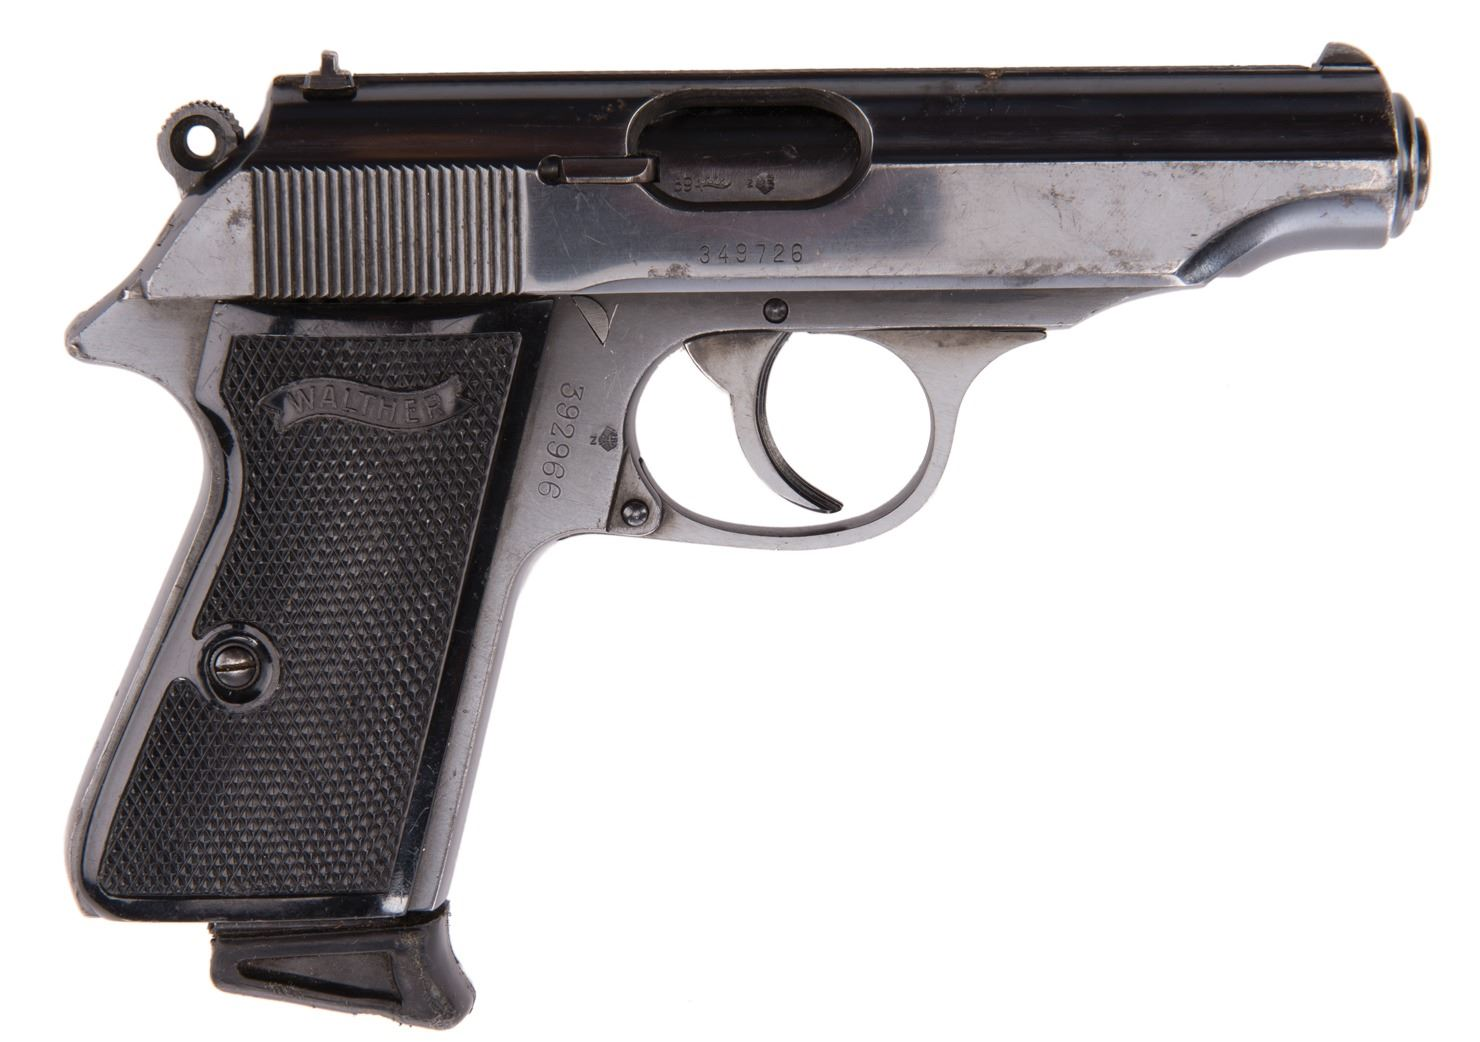 Rick Aviles Willie Lopez Walther Pp Pistol From Ghost